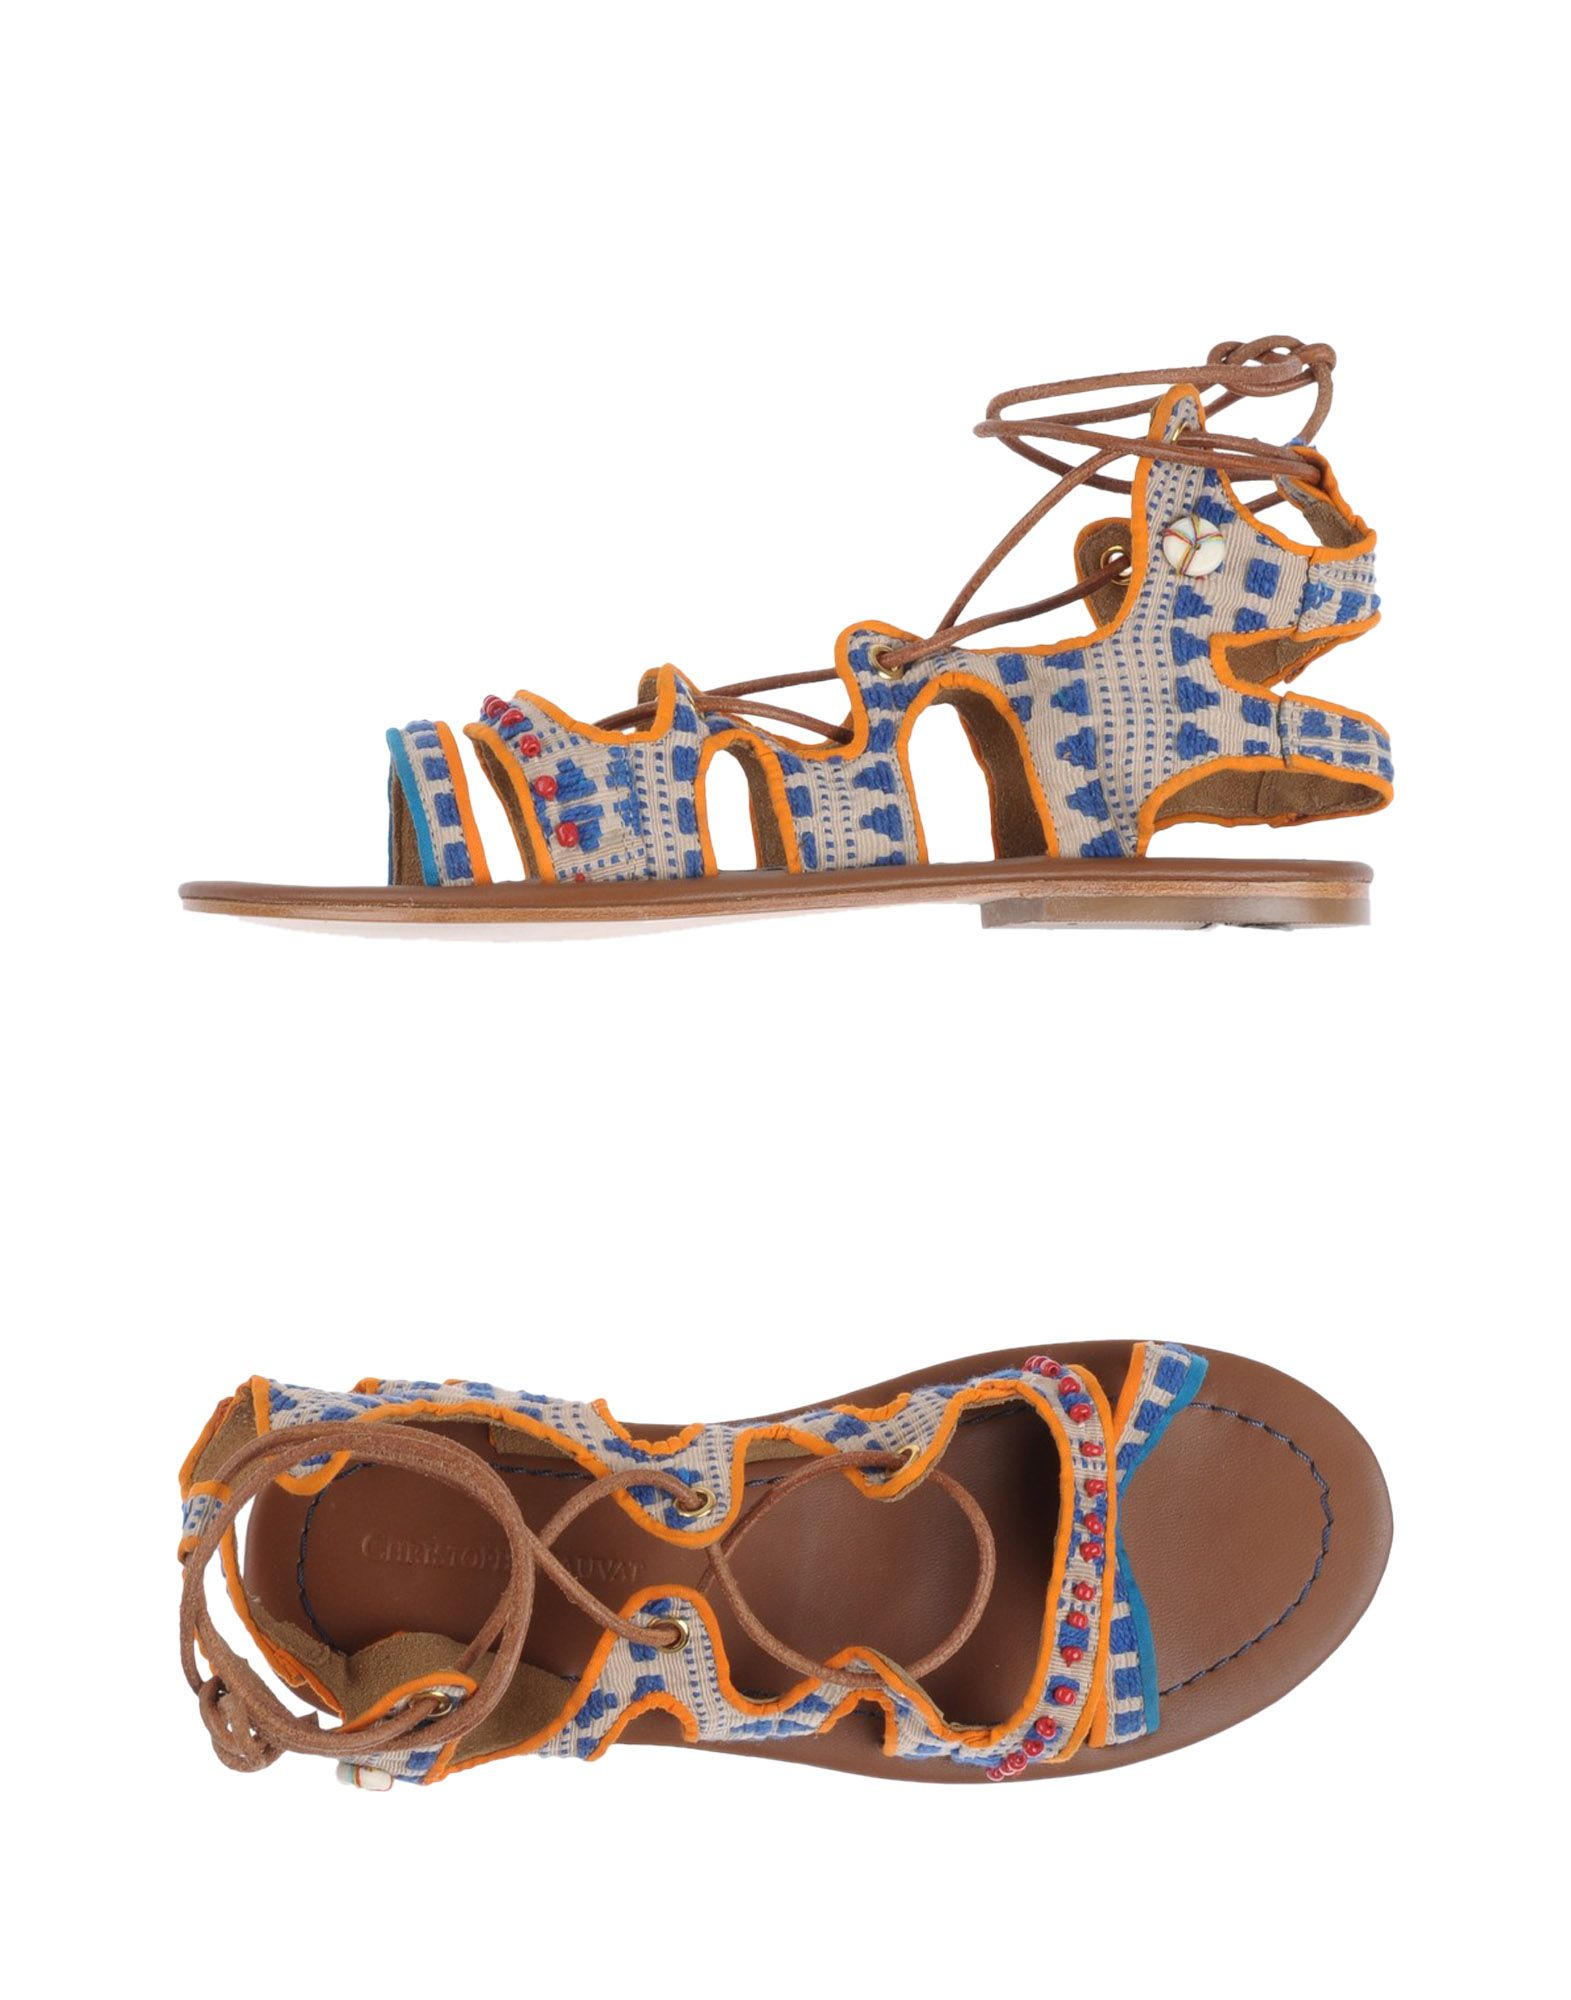 CHAUSSURES - SandalesChristophe Sauvat HRB70AE